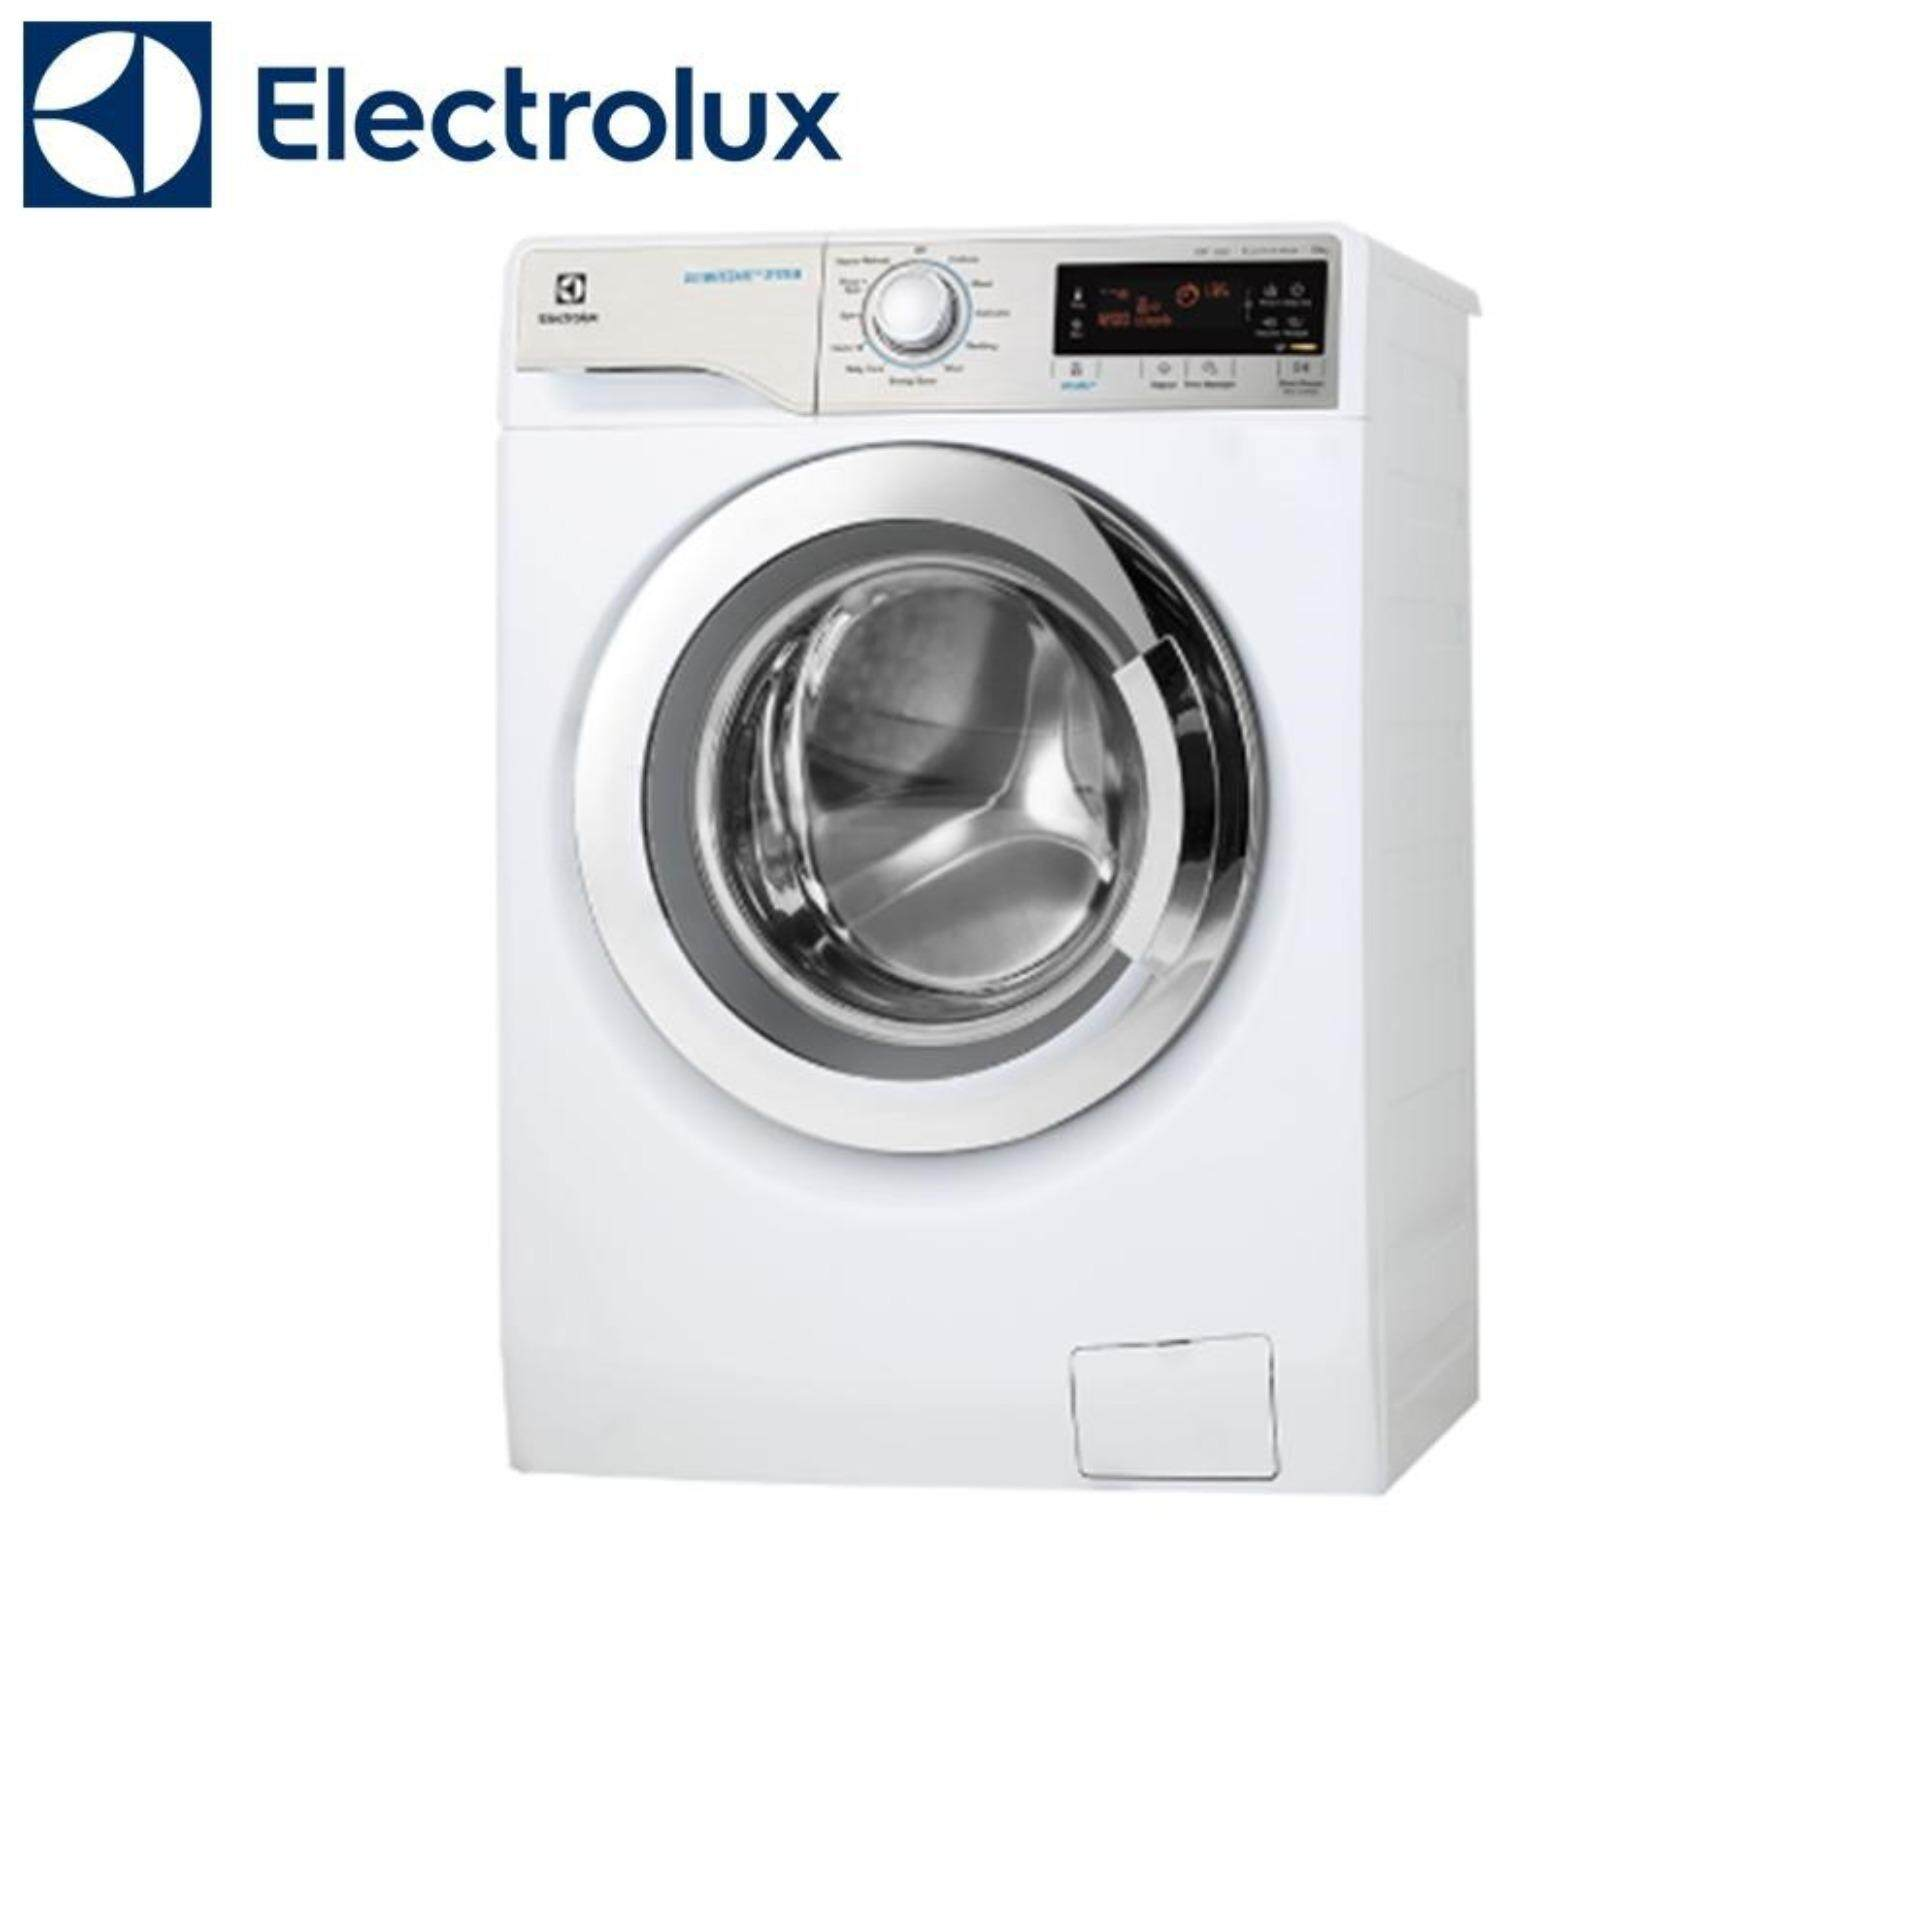 Electrolux Washing Machine Ewf12033 10kg Inverter Front Load Washer By Lazada Retail Tech-Mall.